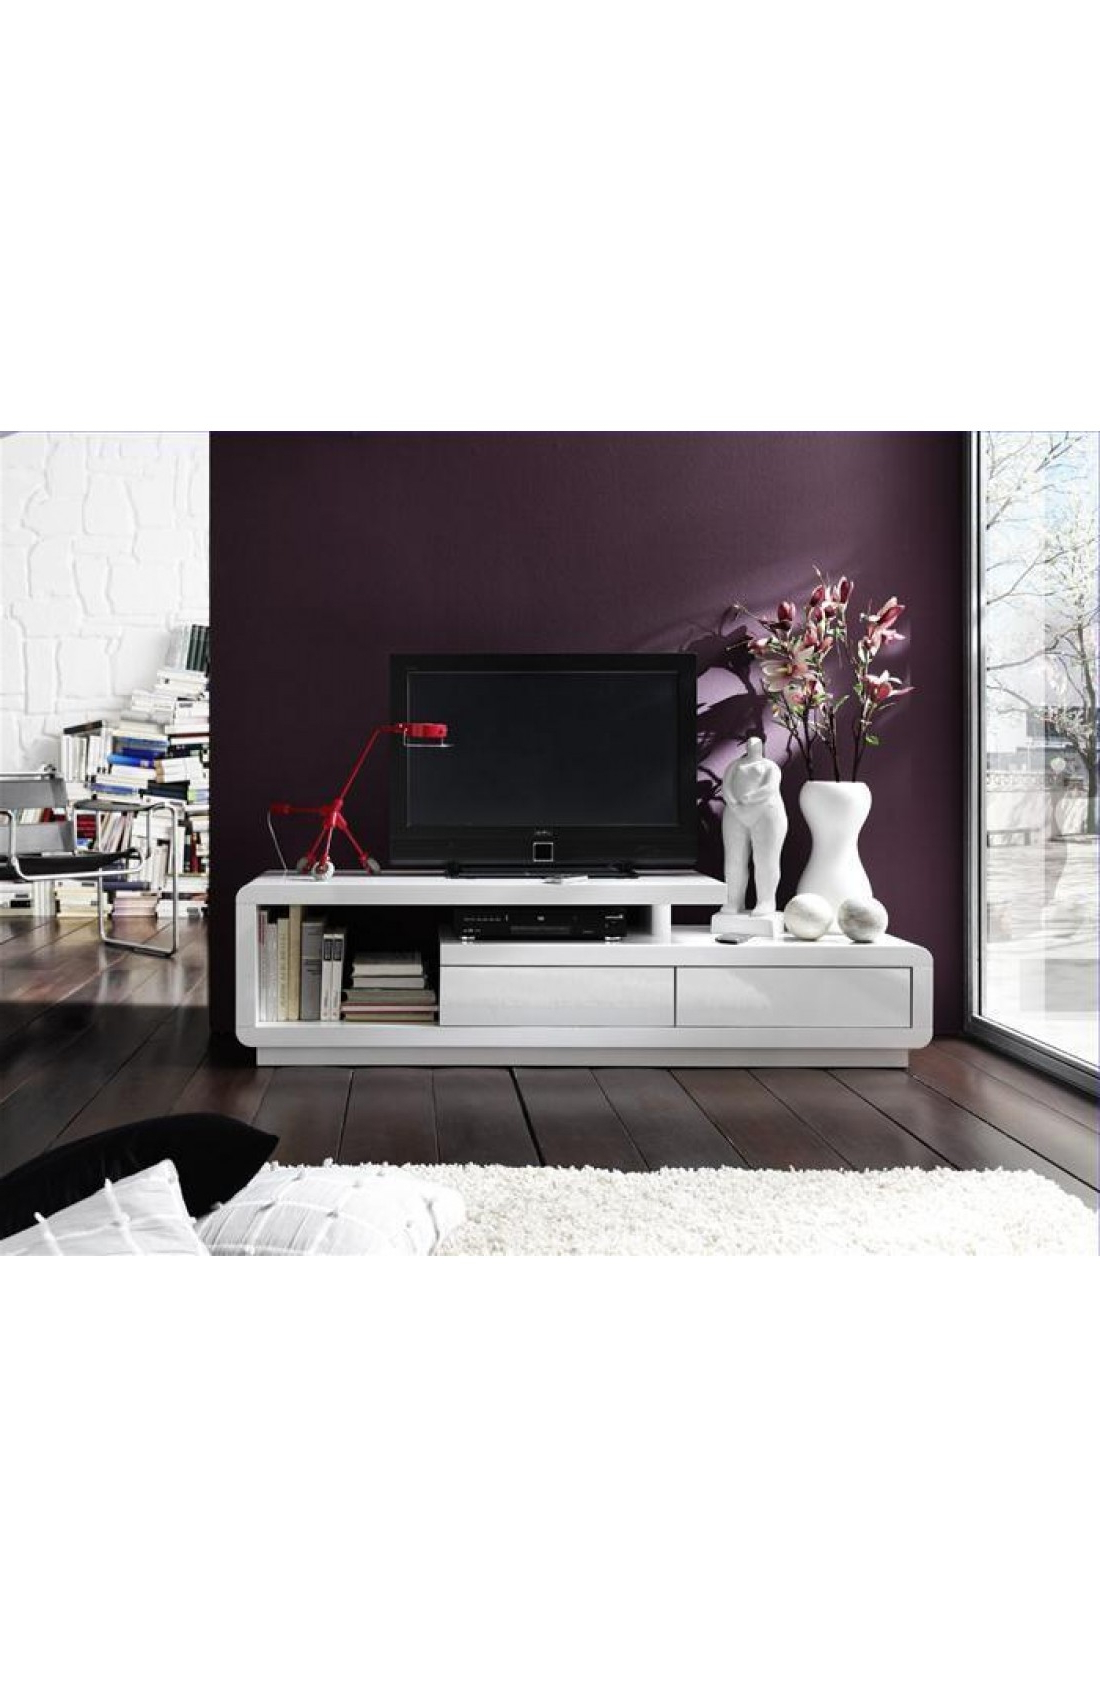 Modanuvo White Gloss Tv Unit Cabinet With Drawers With Most Up To Date White High Gloss Tv Stands (View 7 of 20)